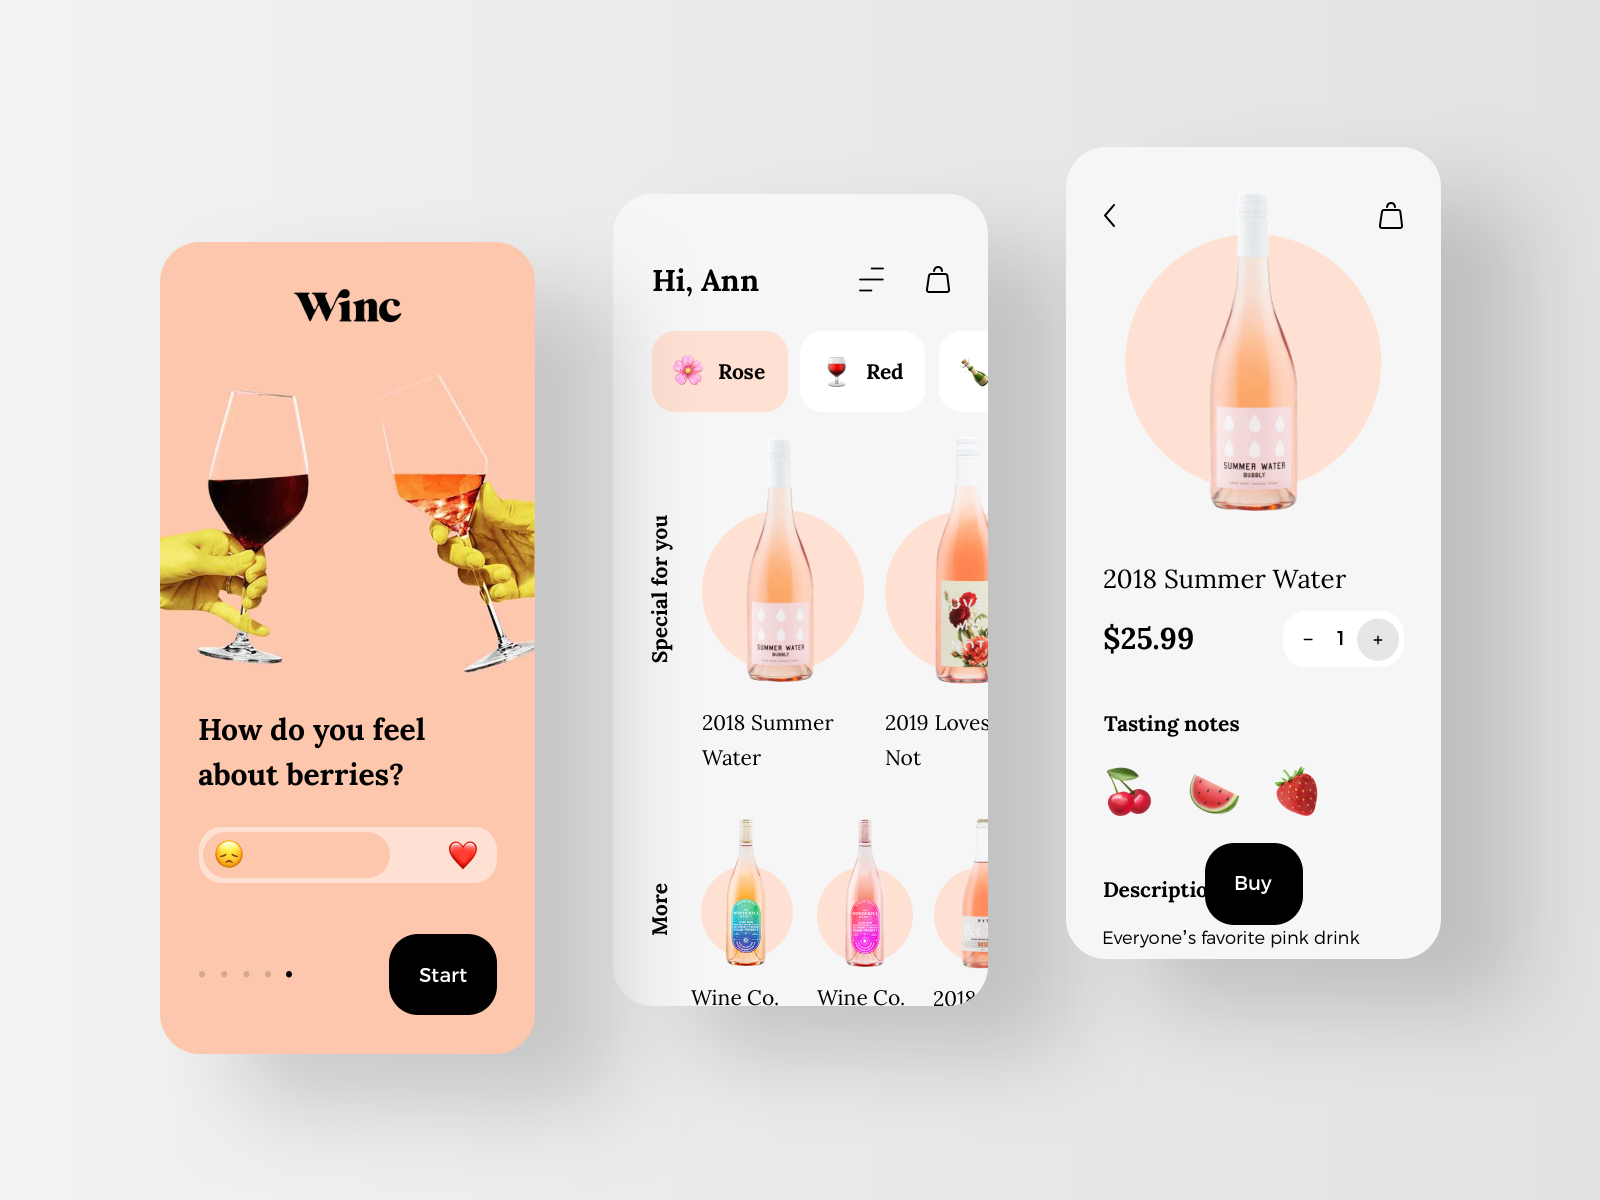 Winc - Wine Guide eCommerce Mobile App